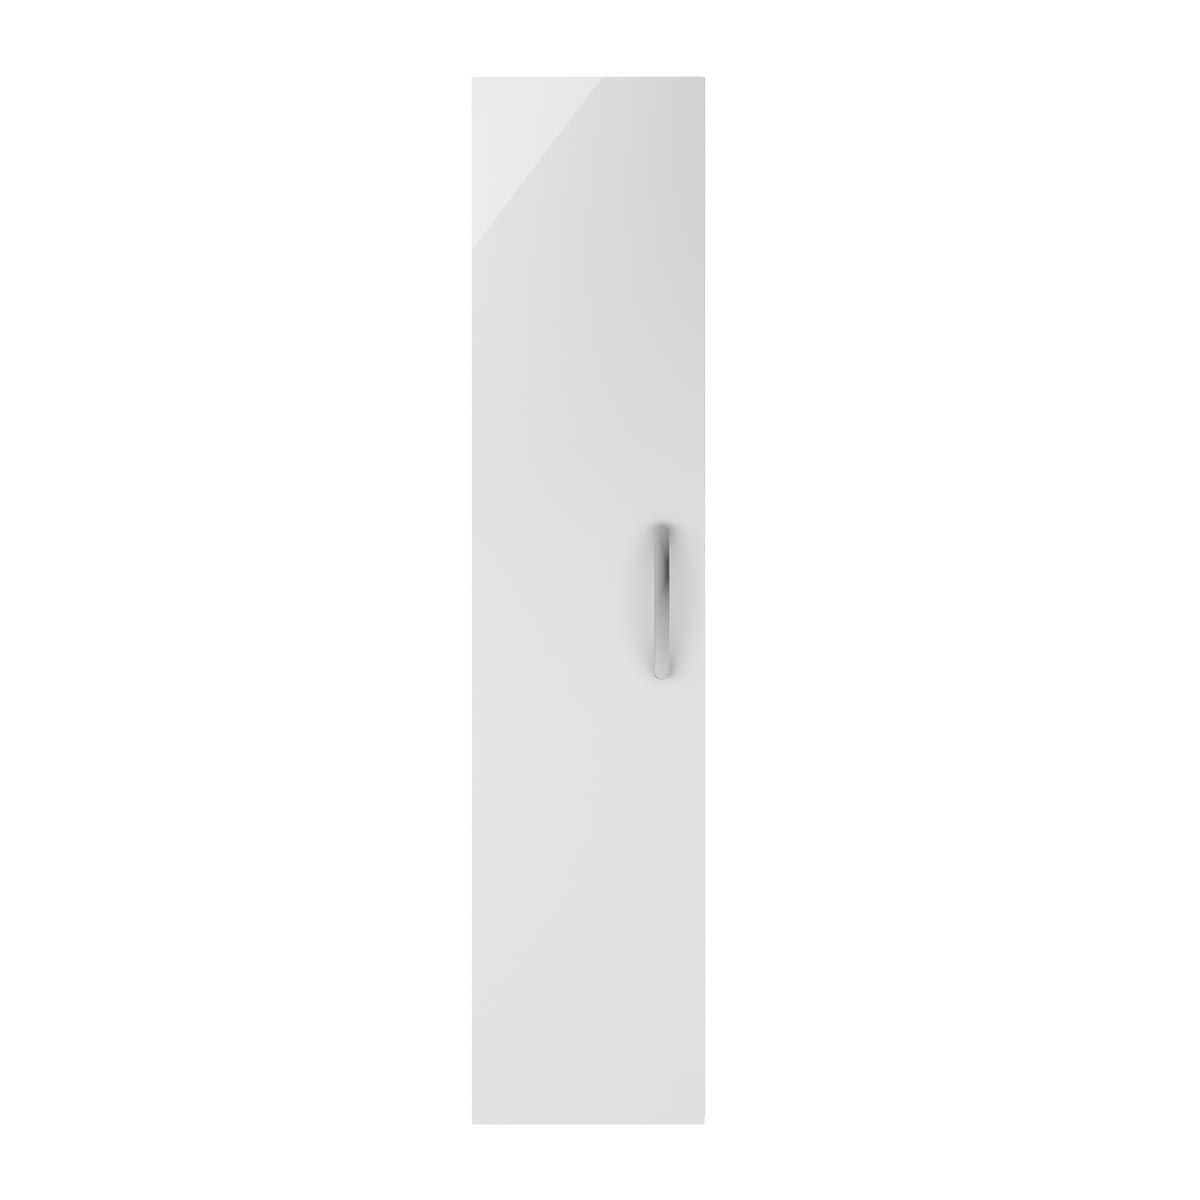 Nuie Athena Gloss White Single Door Tall Unit 300mm